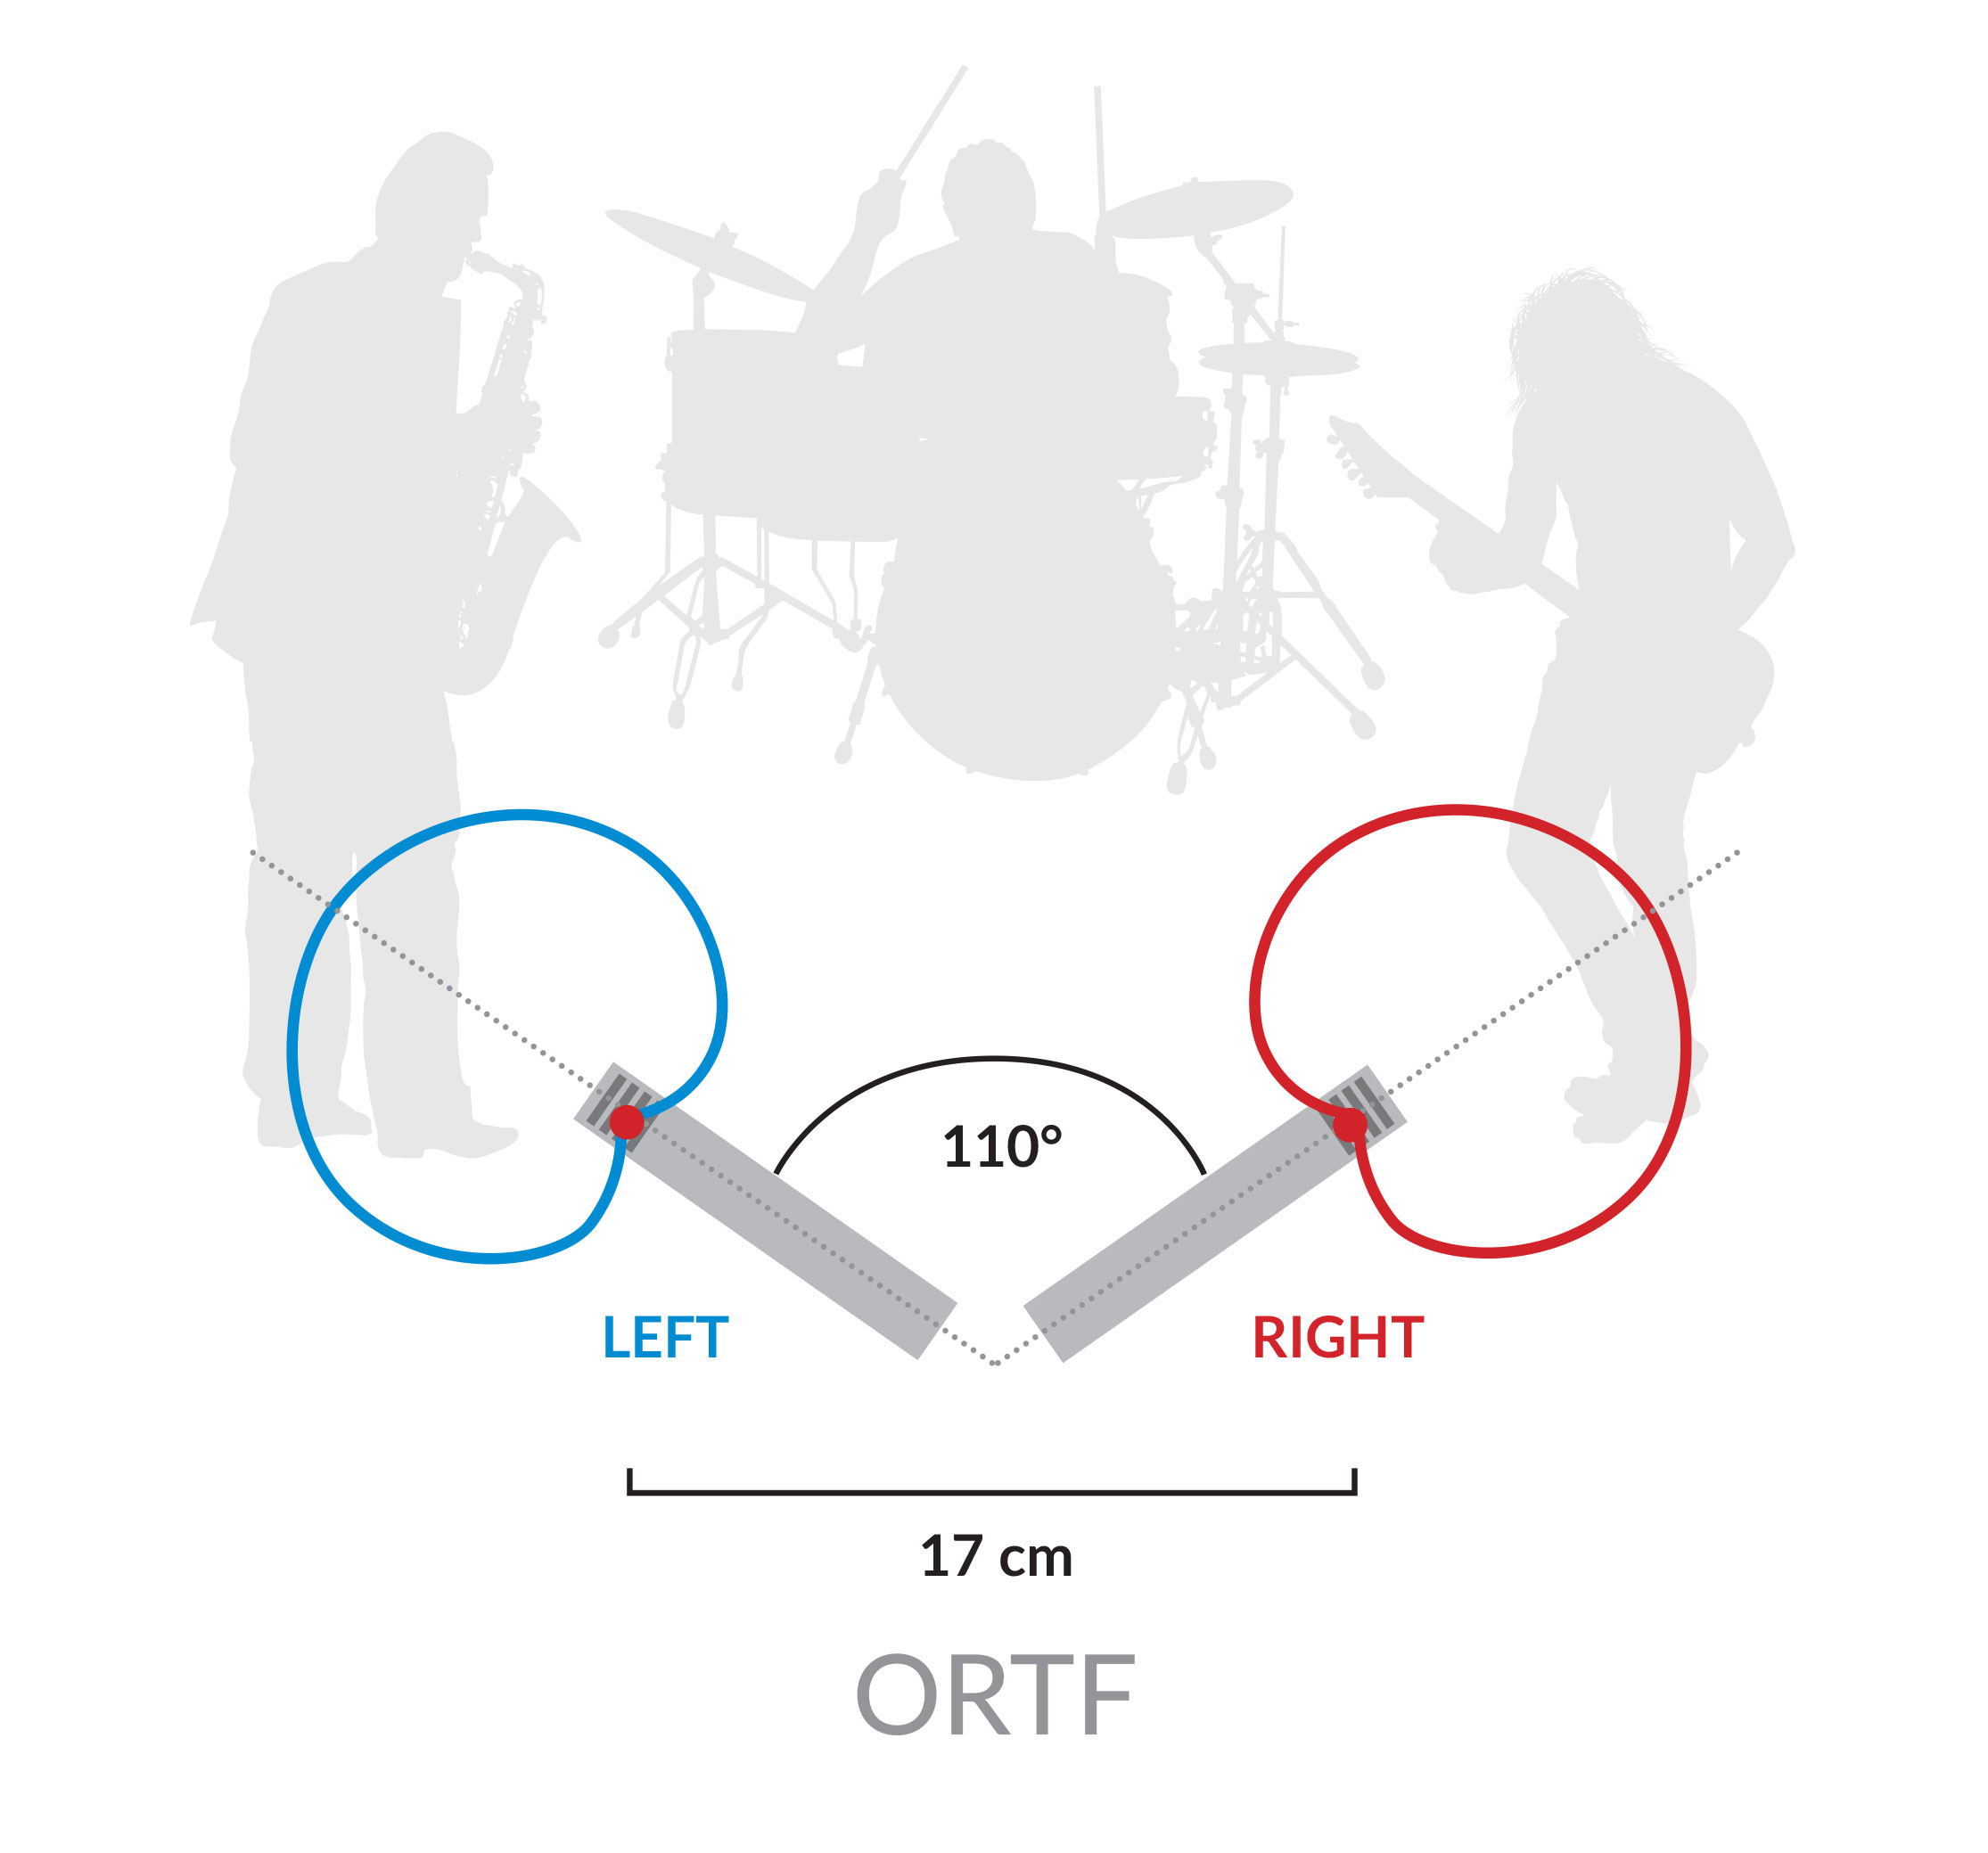 MS Patterns ORTF